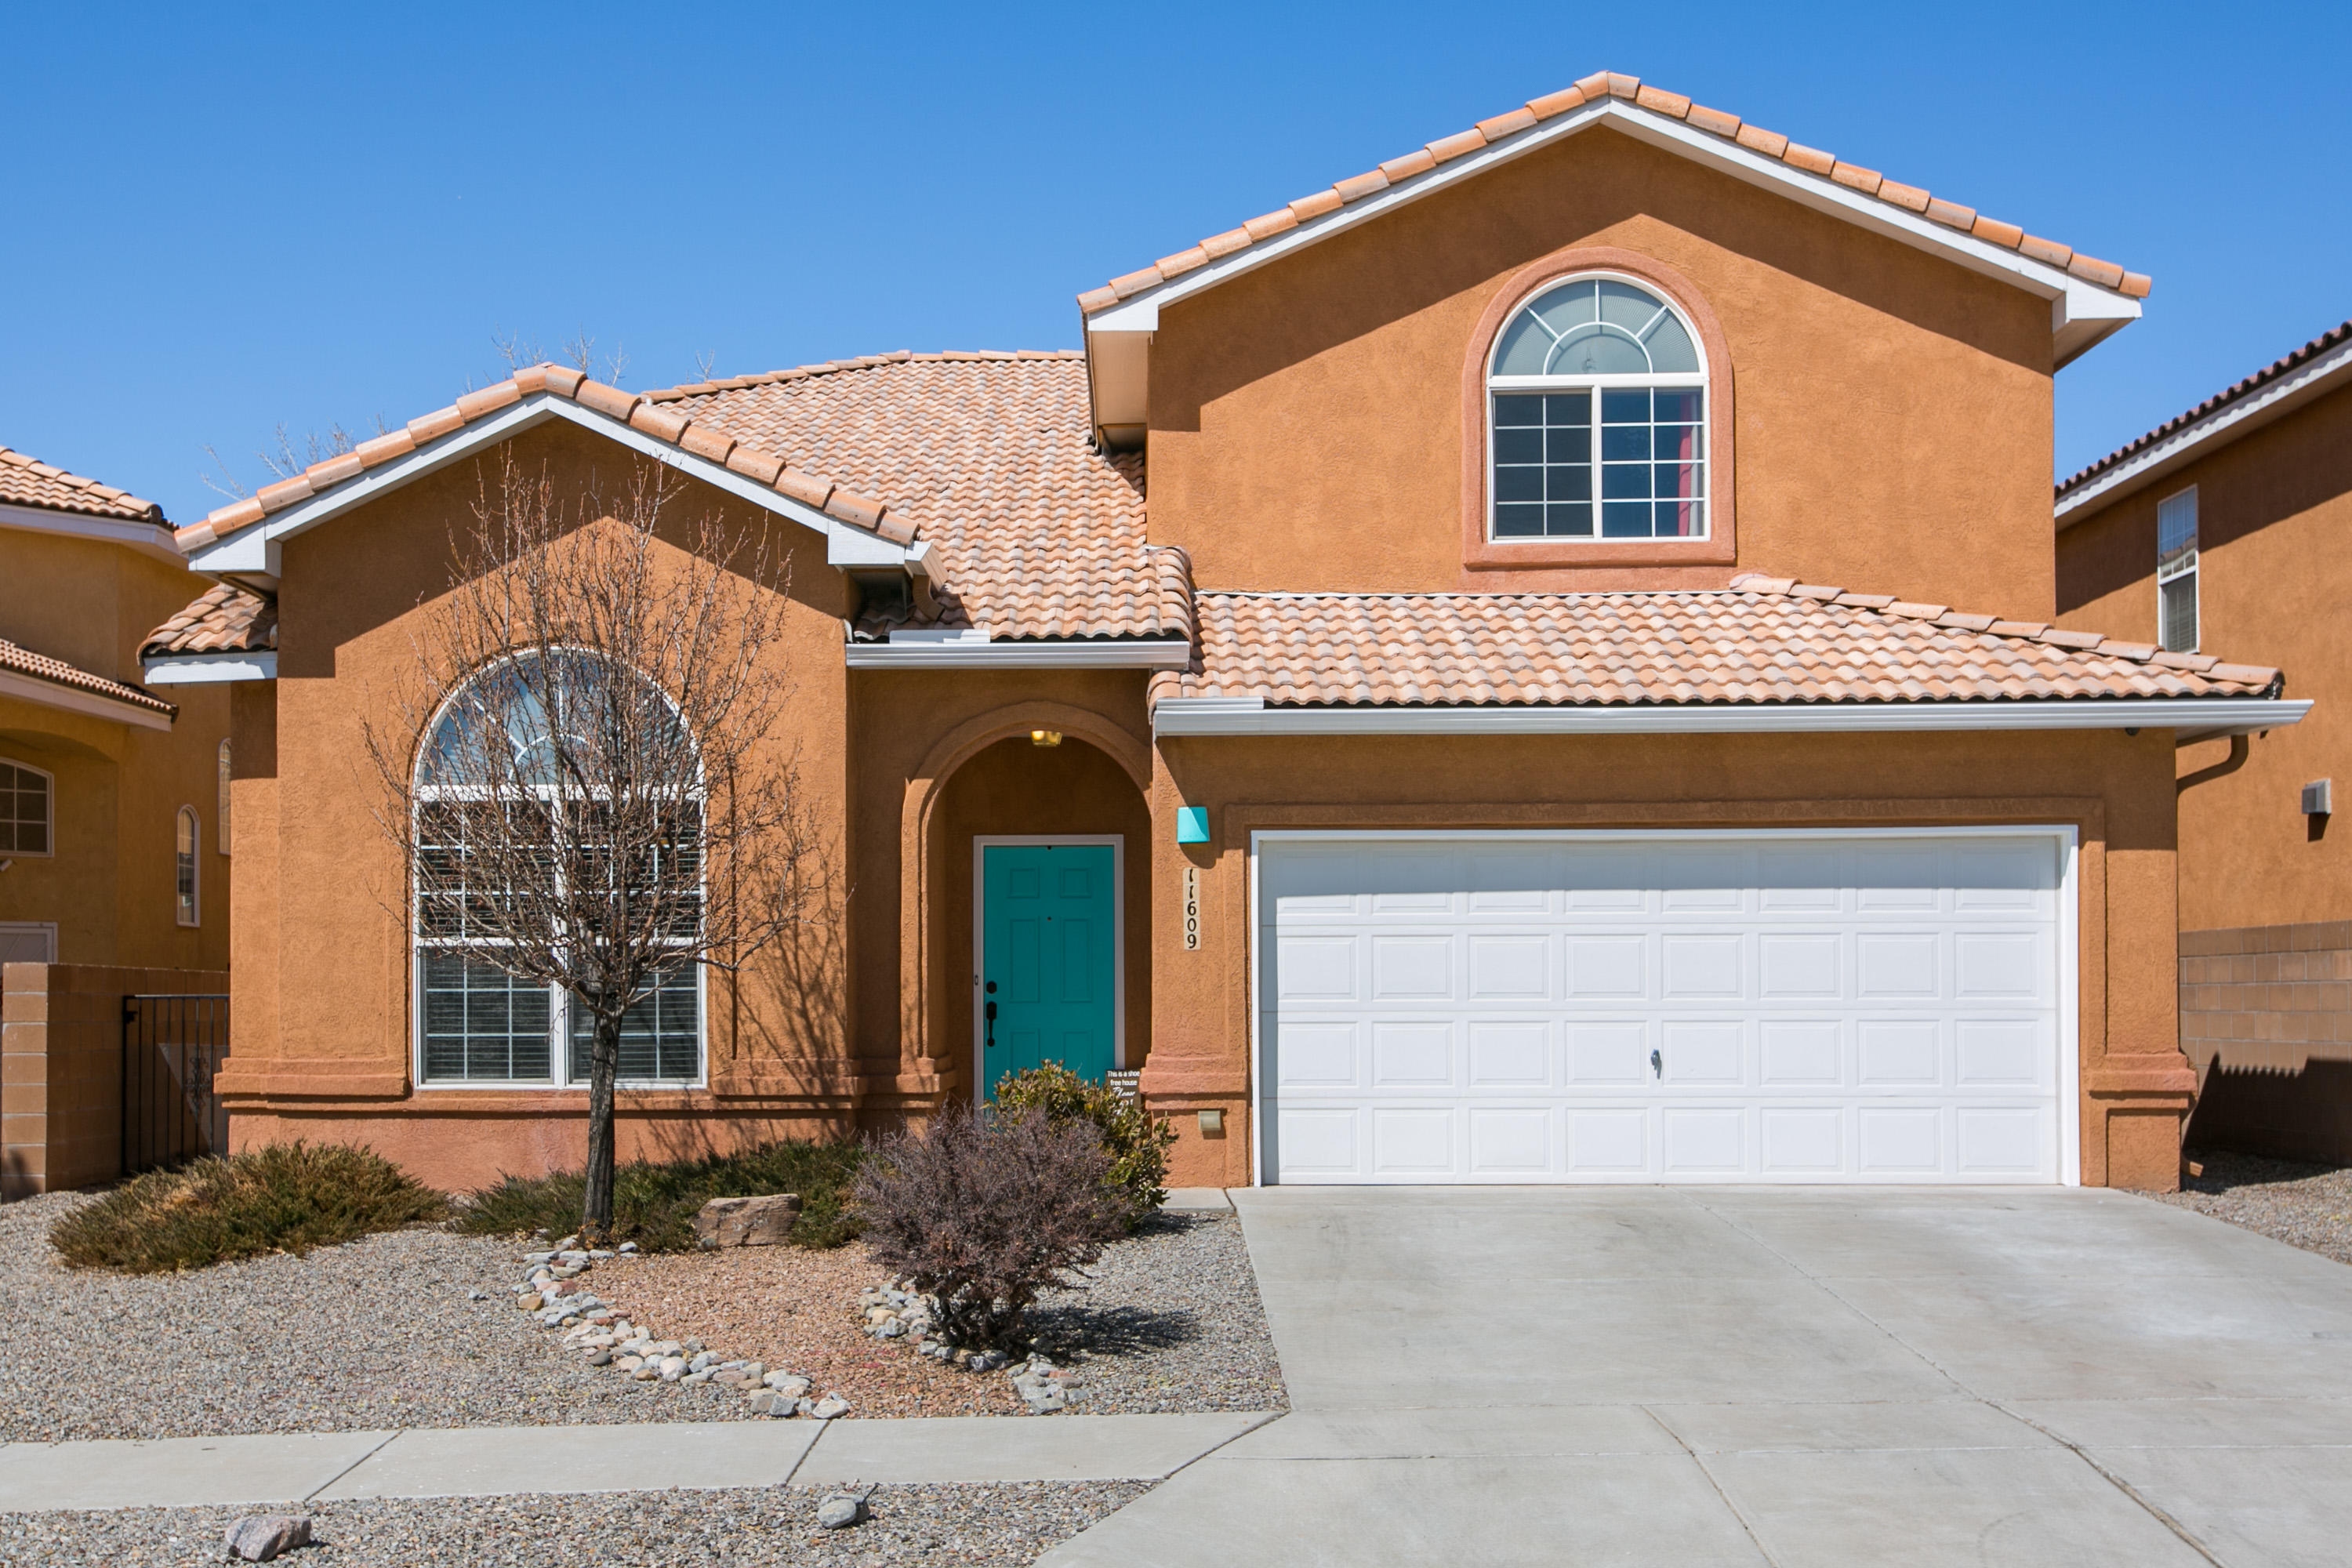 Wonderful open, light bright family/extended family home. NO PID! NO PID!NO PID! Situated close to Air Force Base & Sandia Labs.Downstairs bedrm has direct access to a 3/4 bathroom. Possibly 2nd master. Vaulted ceilings in the entry & living. Master has onsuite w/ garden tub & shower & 2 sinks, walk-in closet. Large closets in 3 additional bedrooms upstairs & fans in all bedrooms. Home has new trim throughout, with new luxury vinyl plank floors installed on the main floor, as well as the 2 bathrooms upstairs. Home has 2 living areas & formal dining. New Paint, newer appliances including a gas stove. Complete Landscaped yard has an irrigation system. Covered Patio & Upstairs deck off Master.  Across the street from a Green Belt for walking, riding bikes & playing catch.Make sure you see